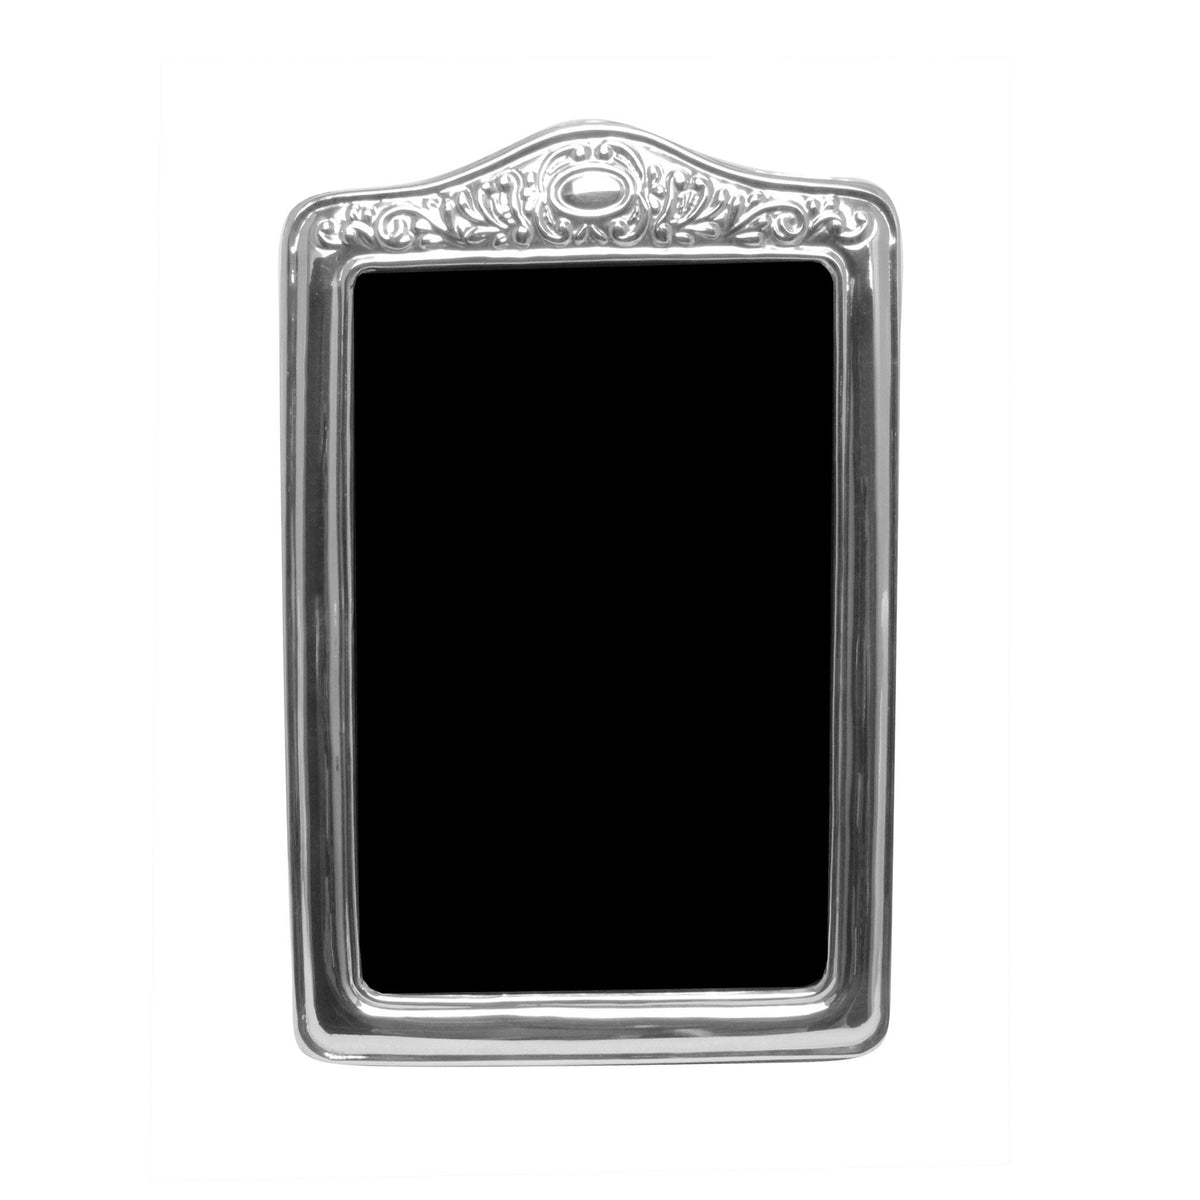 LIMA - Sterling Silver Portrait Frame - Qinti - The Peruvian Shop